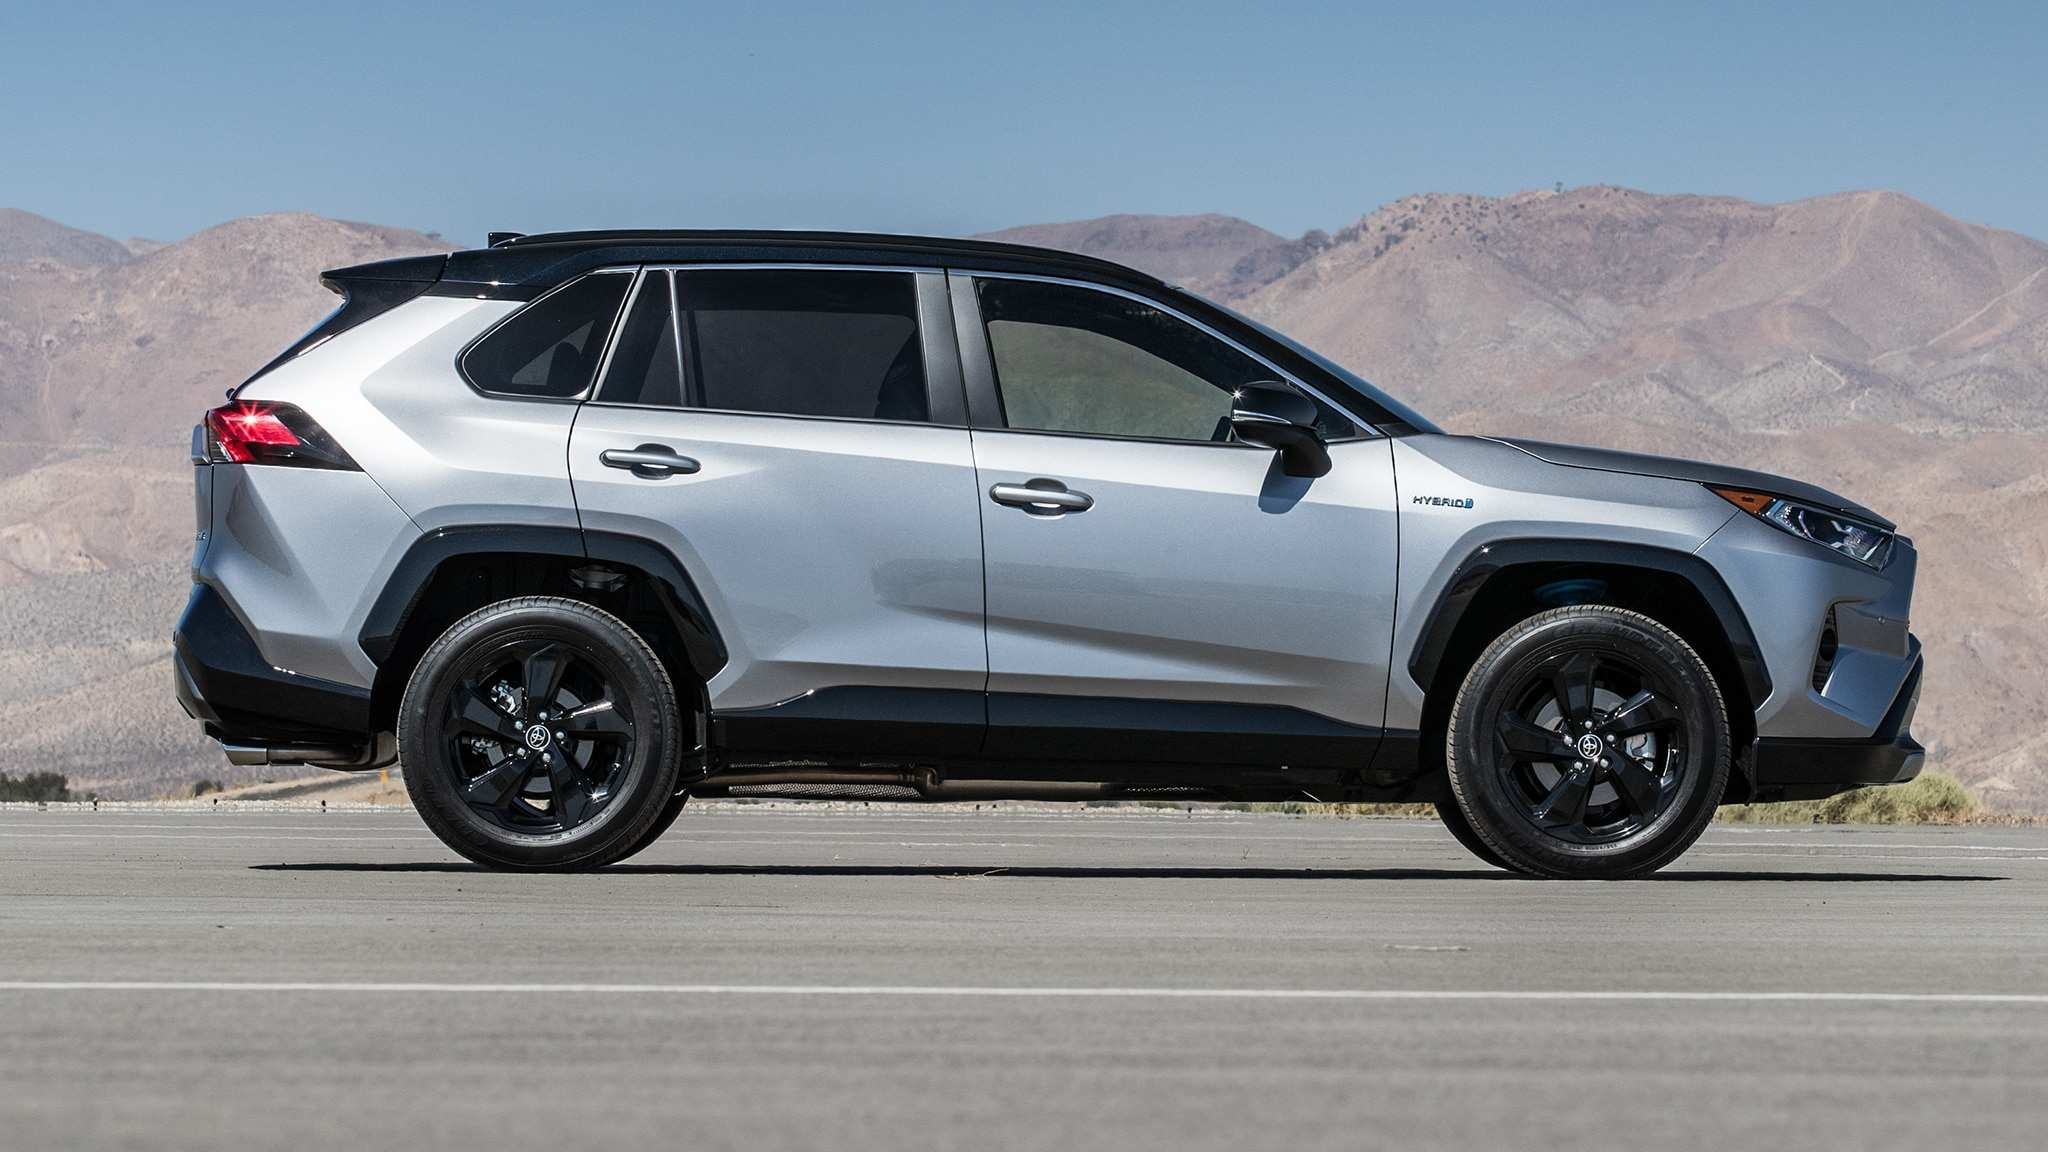 68 Gallery of 2019 Toyota Rav4 Hybrid Redesign for 2019 Toyota Rav4 Hybrid